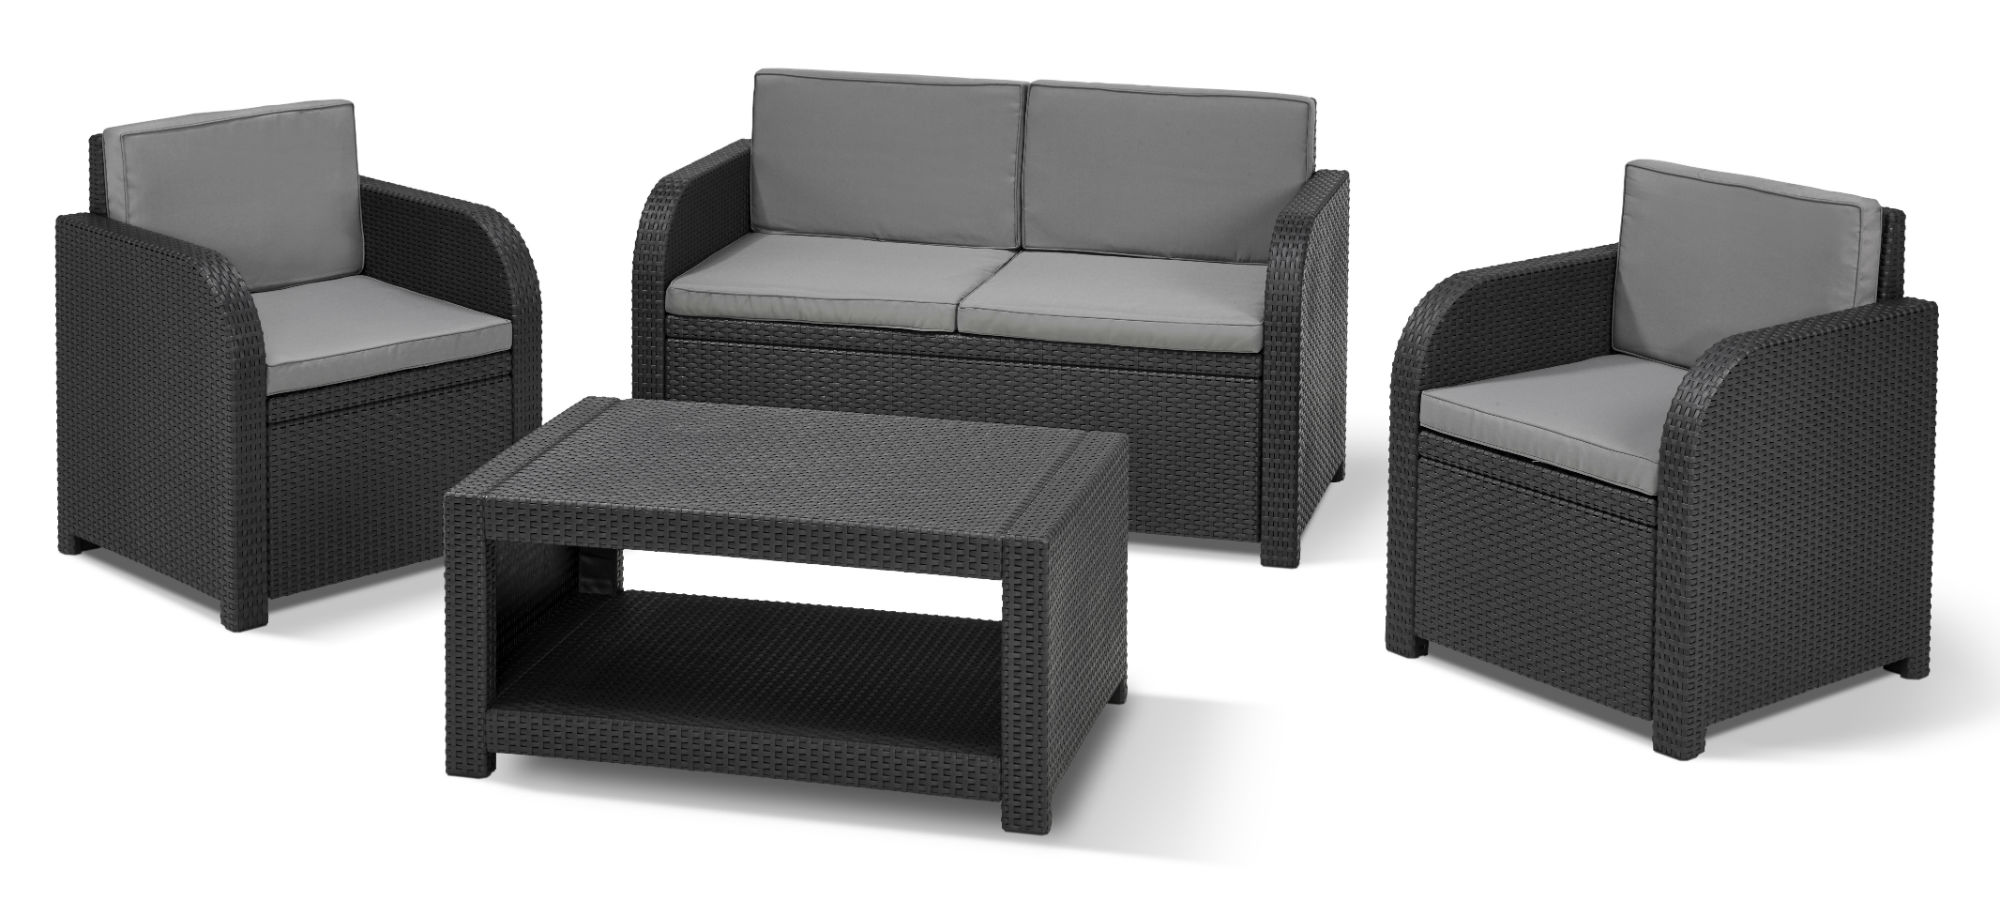 Loungeset modena loungeset 2017 - Salon de jardin allibert hawaii lounge set ...